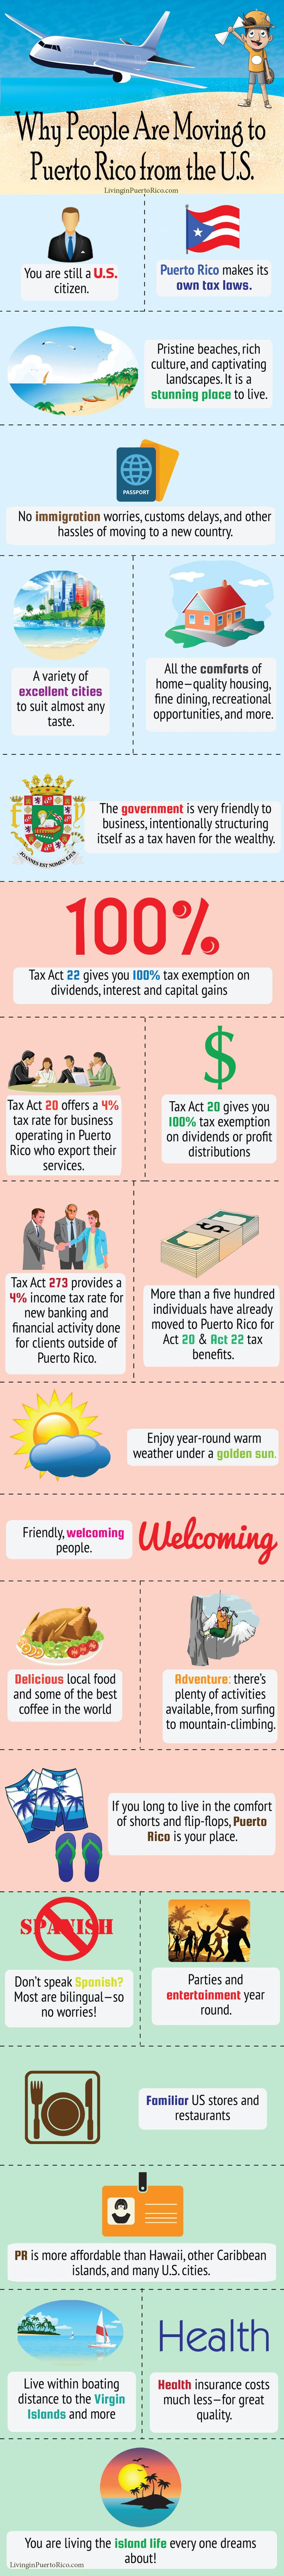 Why People Are Moving to Puerto Rico from the US #infographic #puertorico